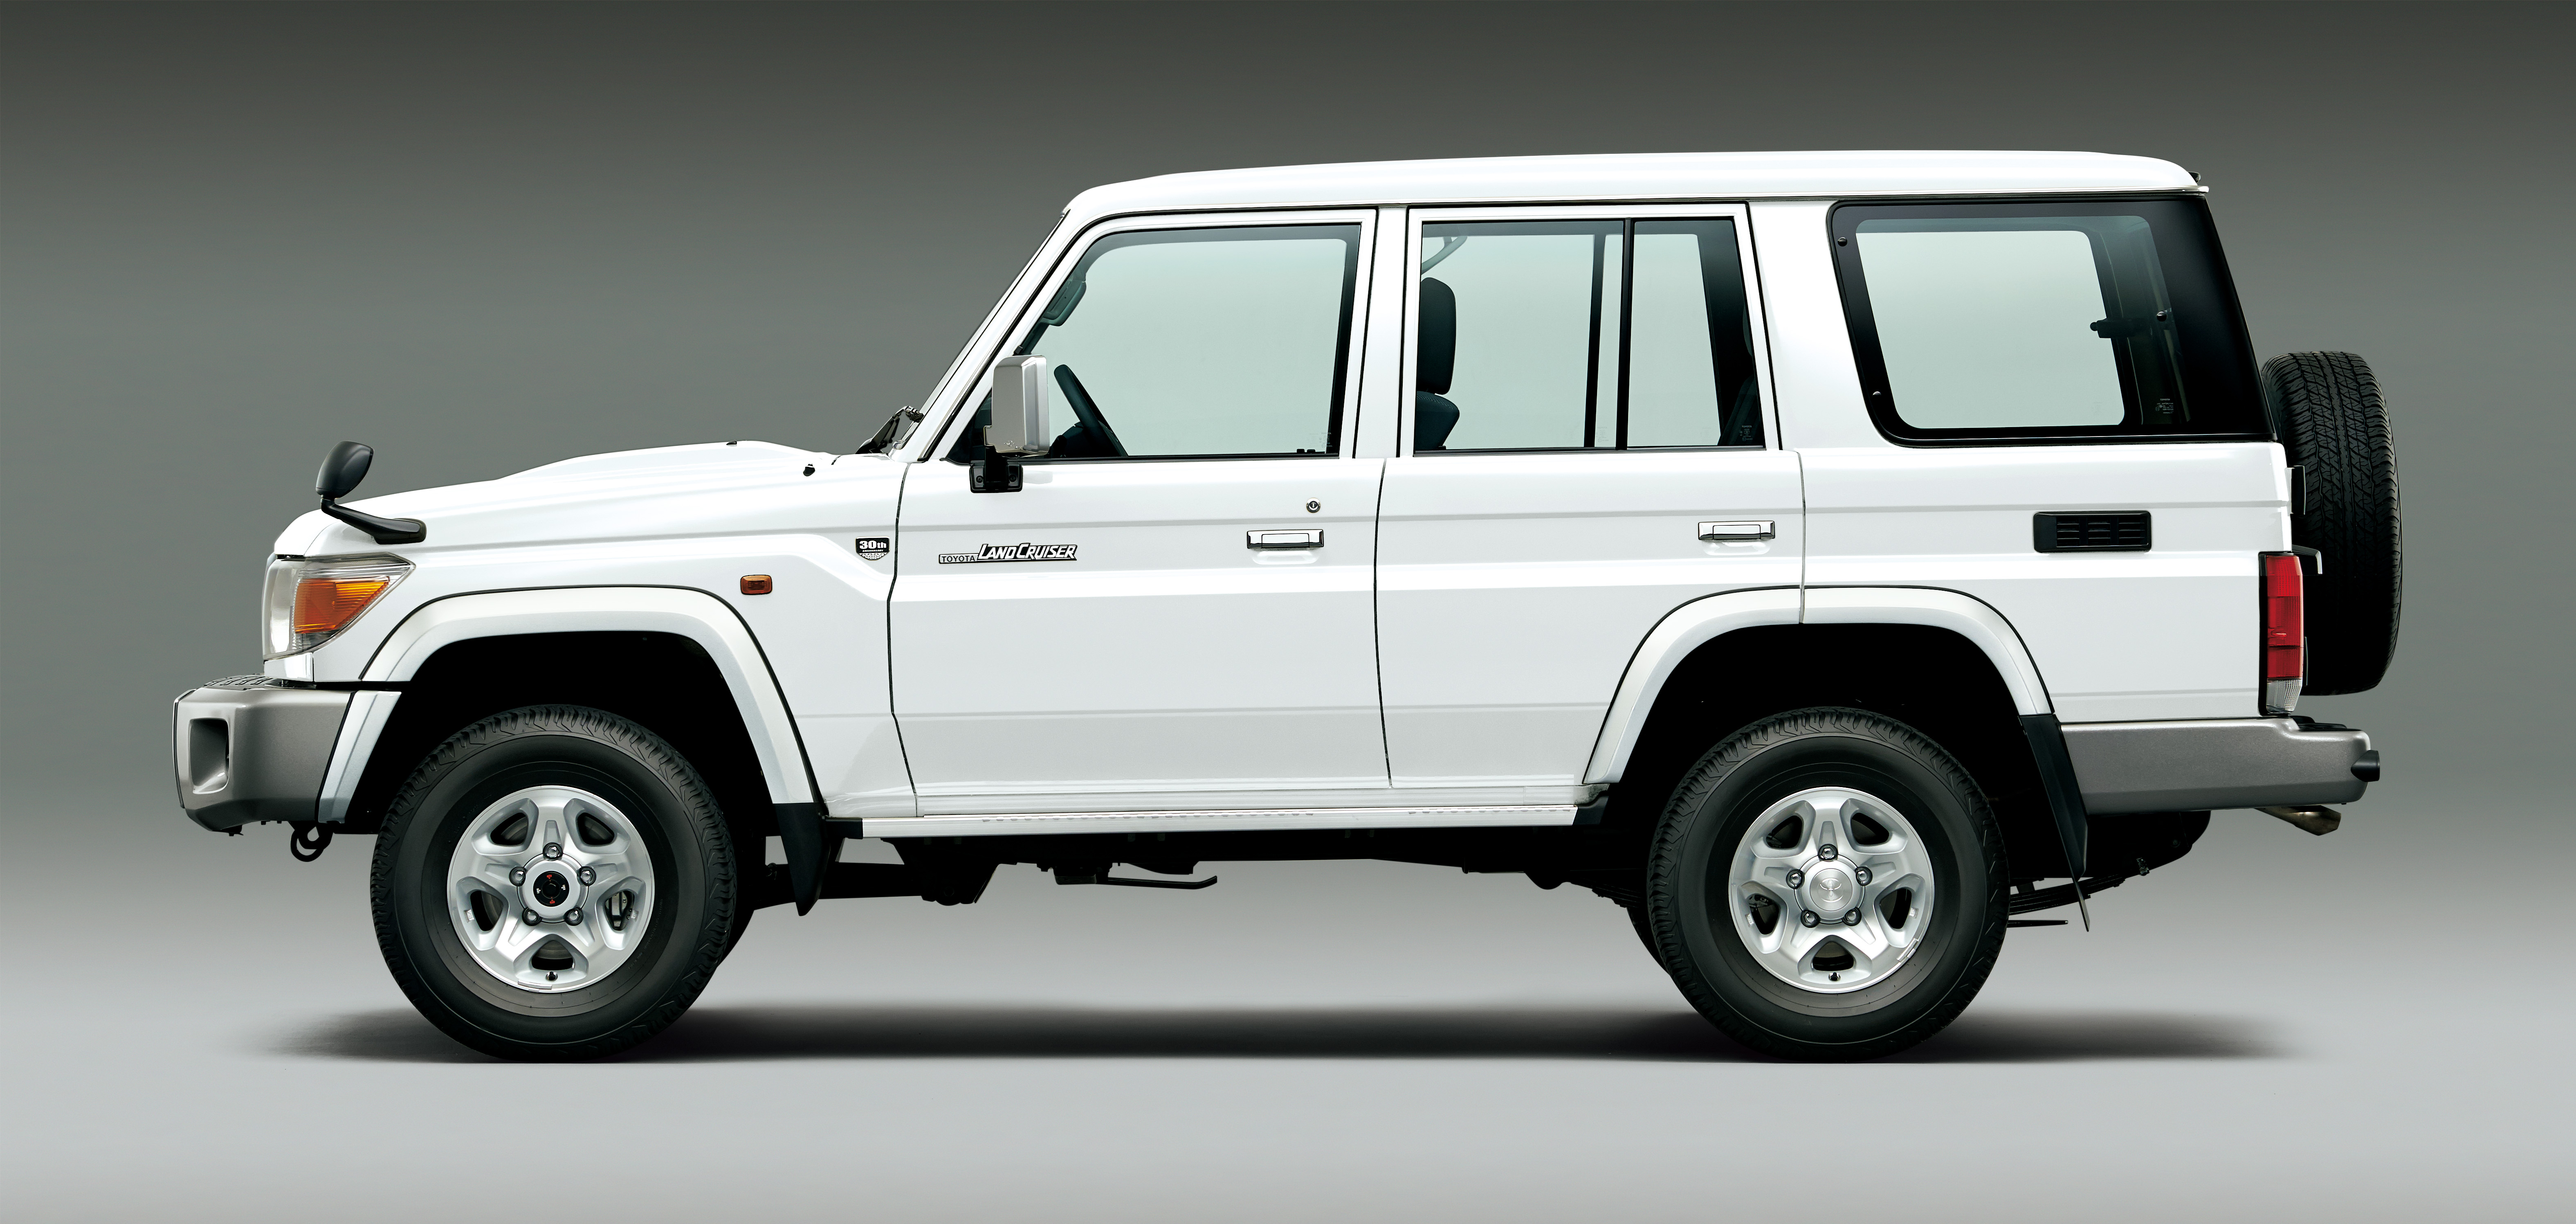 Toyota Land Cruiser 70 Rereleased In Japan For 1 Year Paul